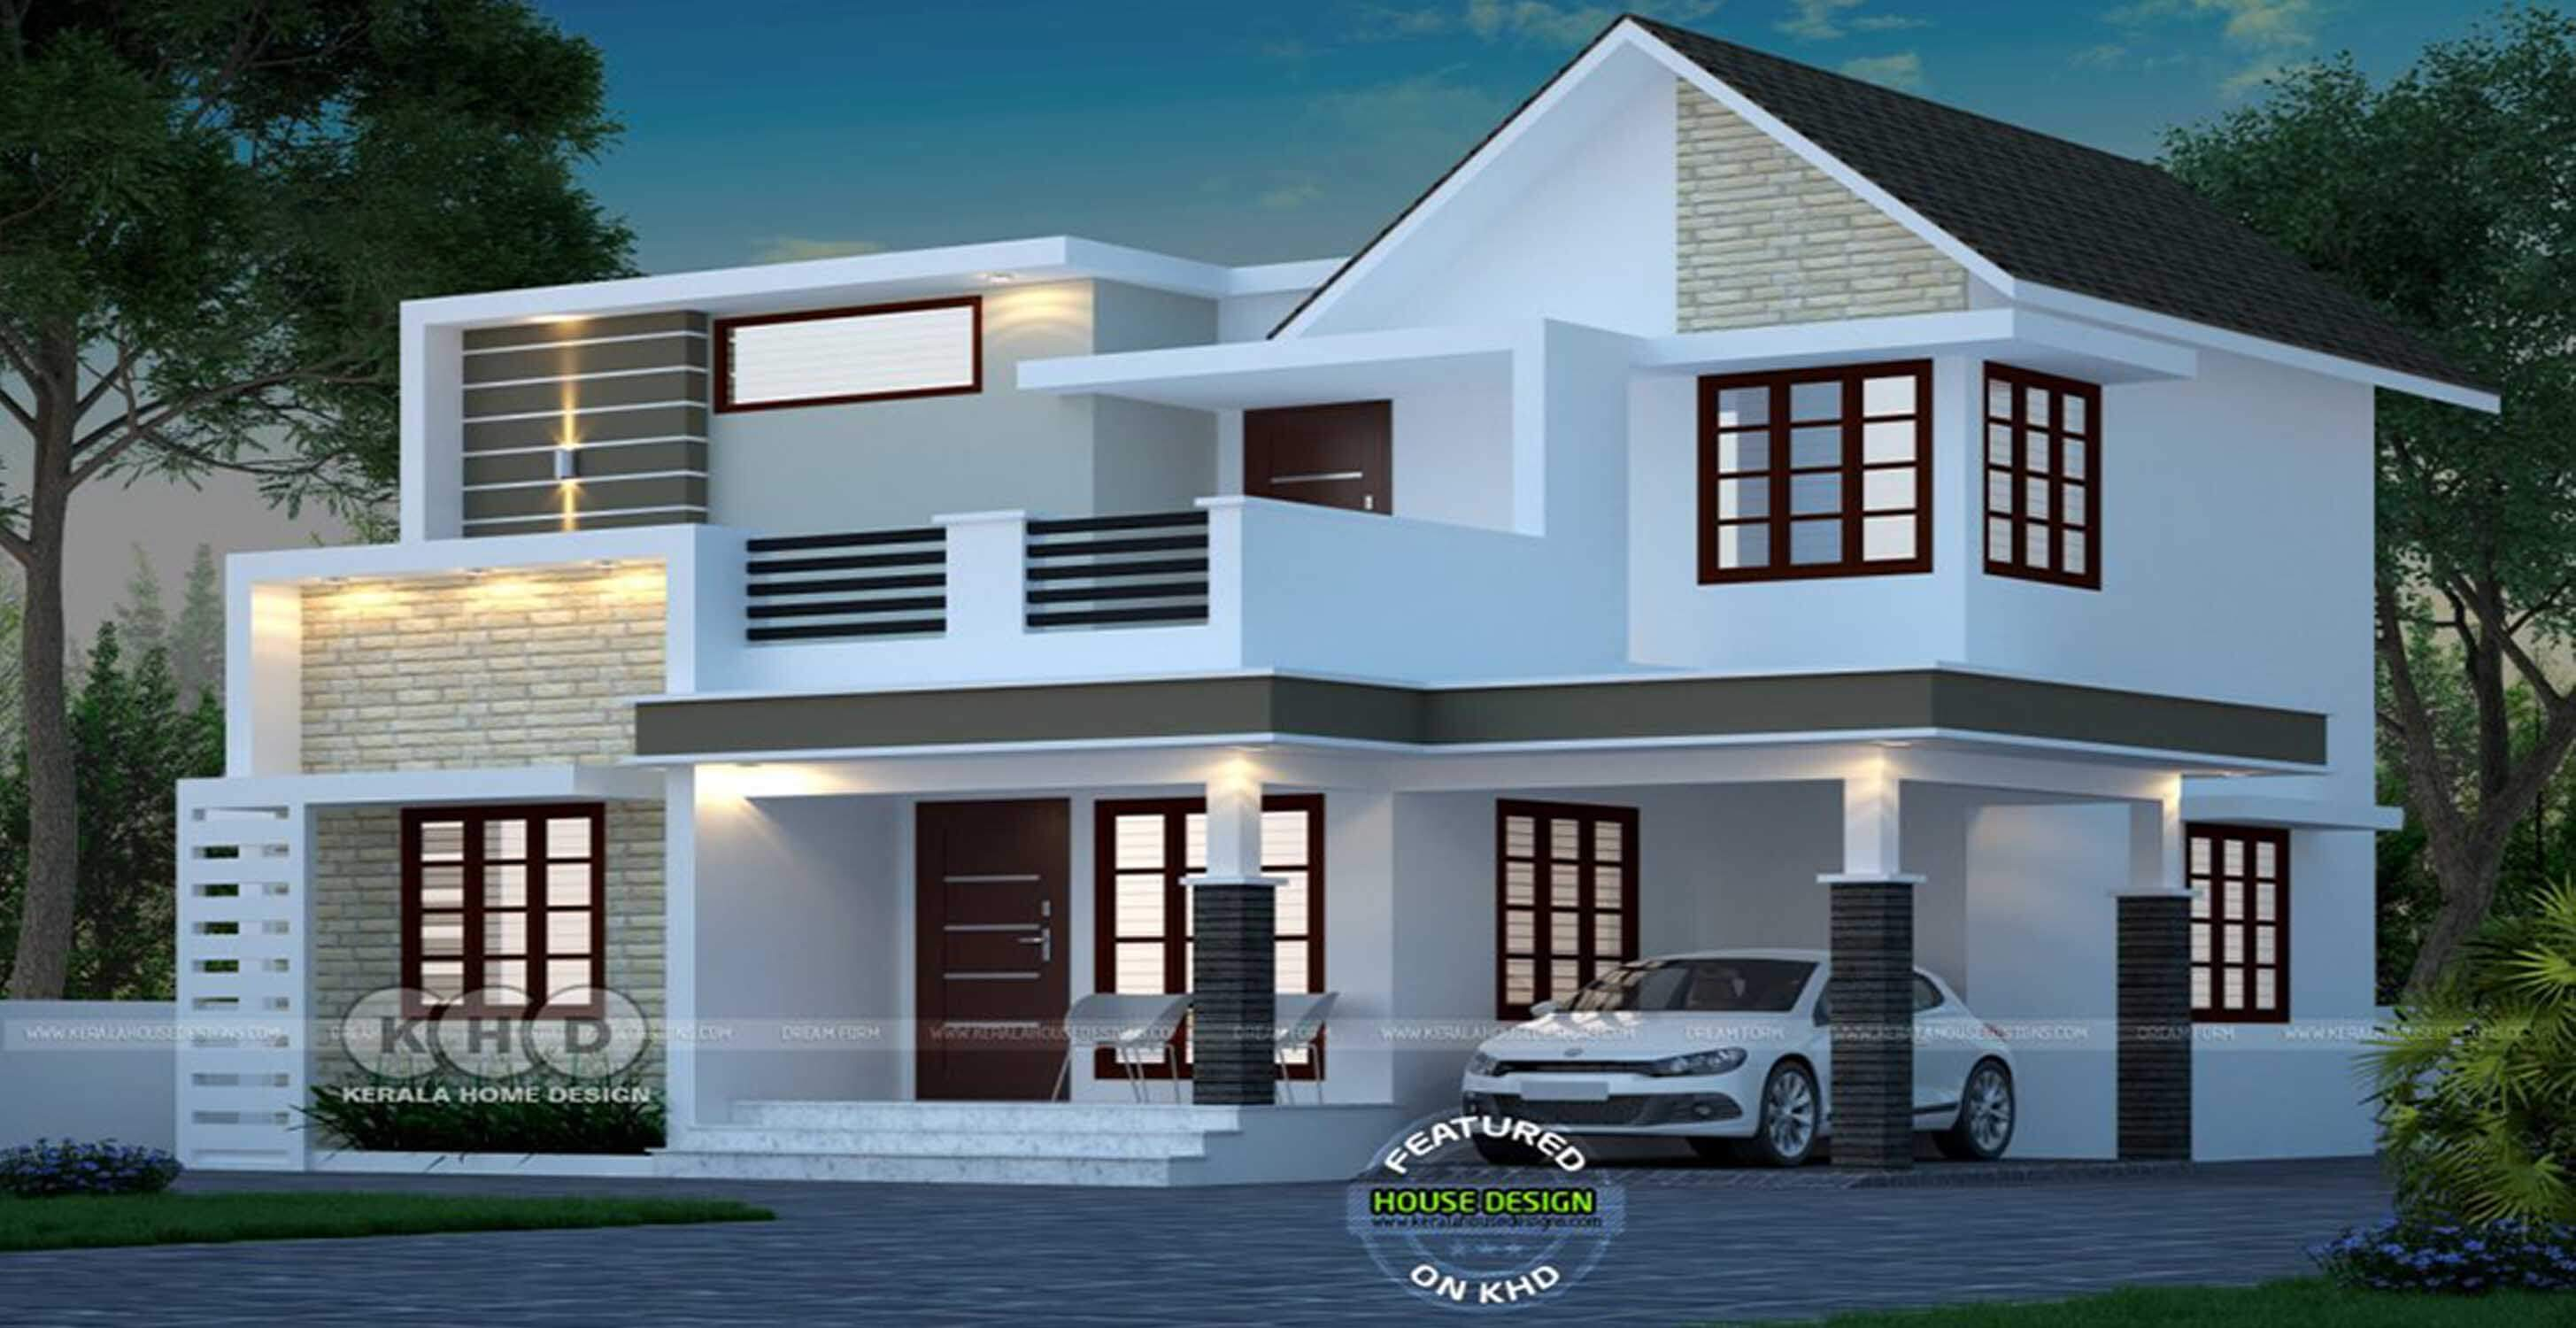 double gable front house design, indian modern houses interior design, double floor living room, double storey house design, colonial style home design, double floor lamps, modern double story home design, on double floor house designs